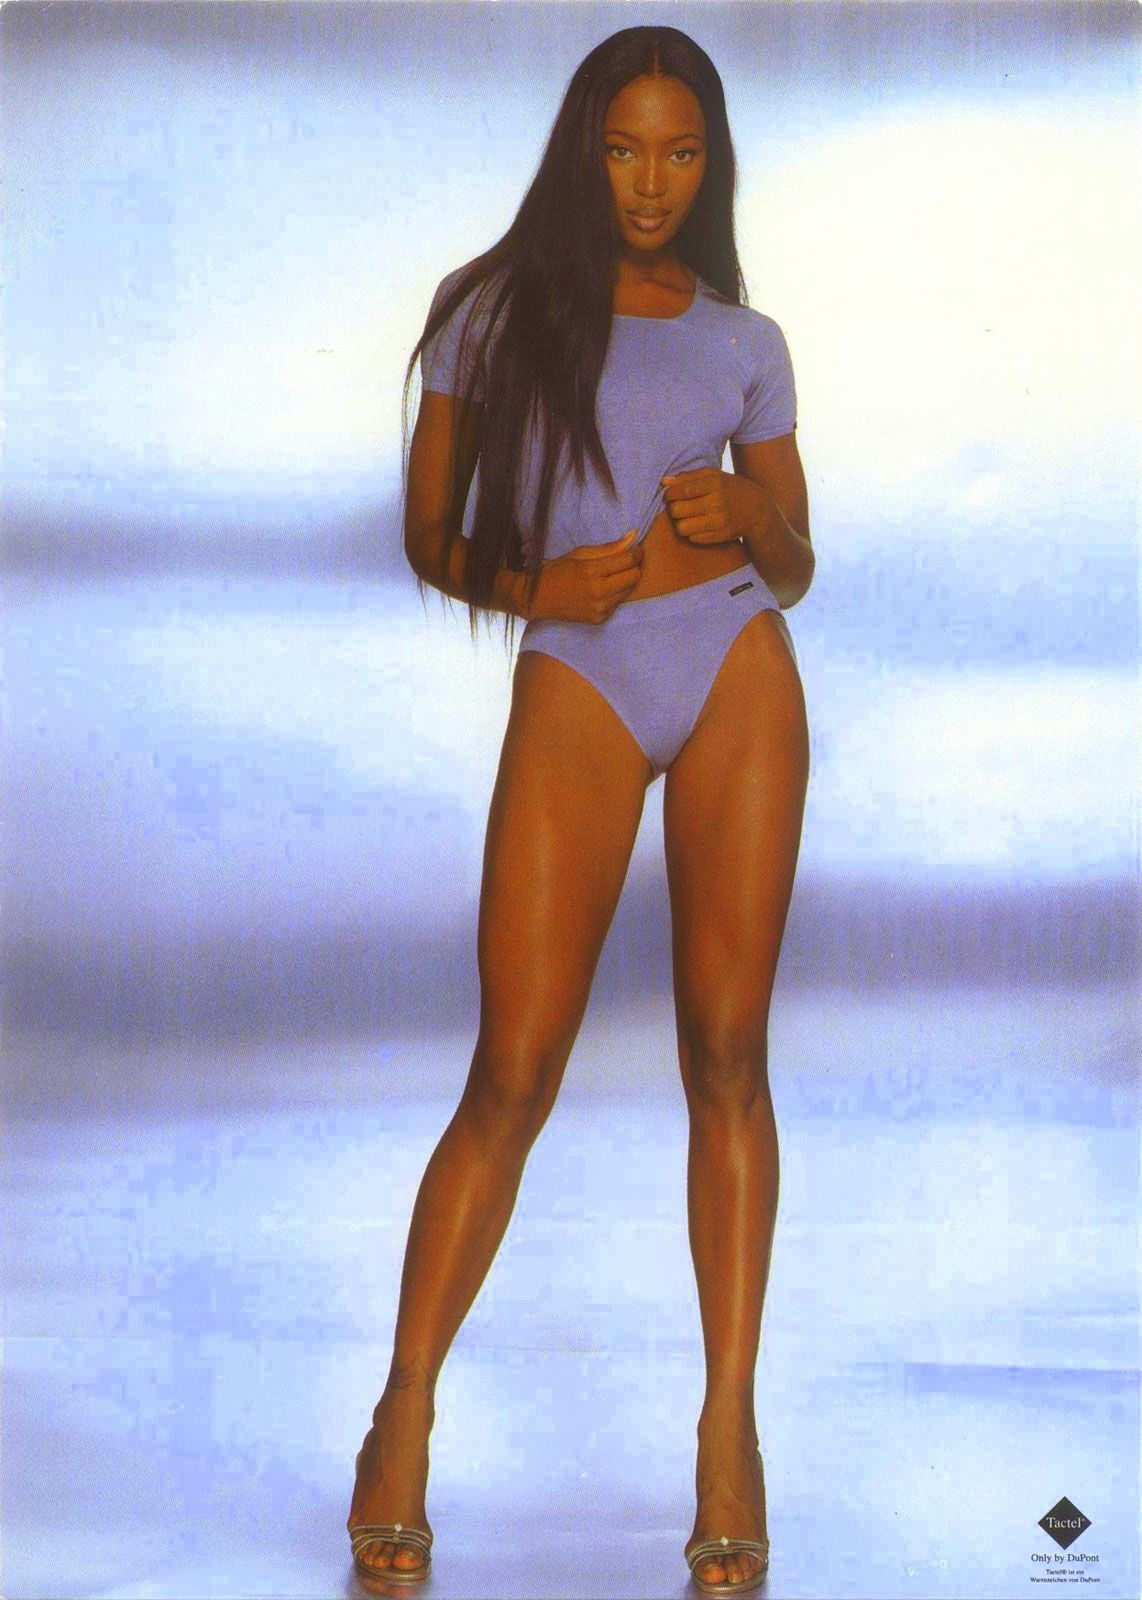 The era of Naomi Campbell is over due to a serious illness. 10/18/2010 30